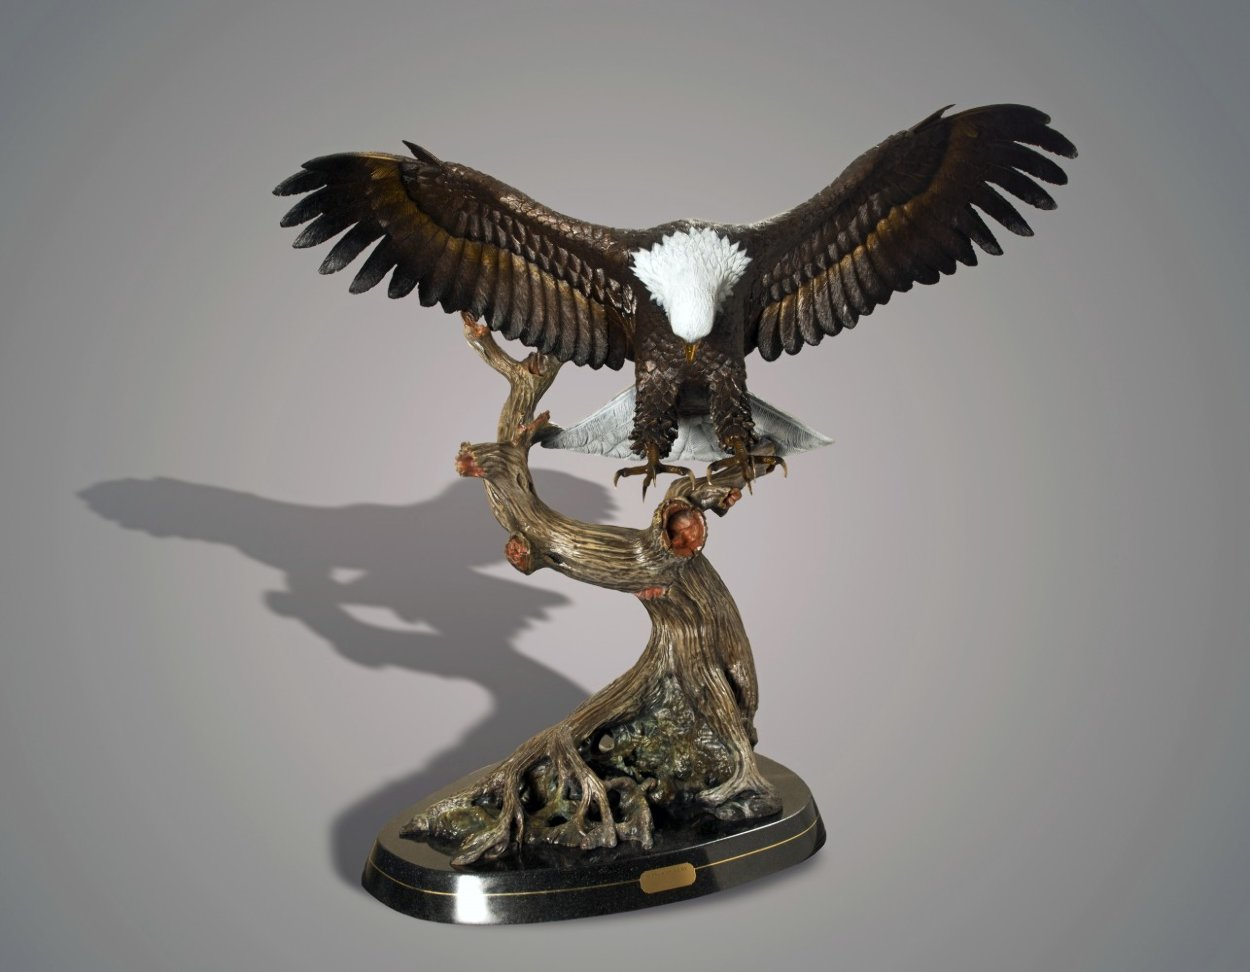 Wings of Fury 2015 40 in Sculpture by Barry Stein